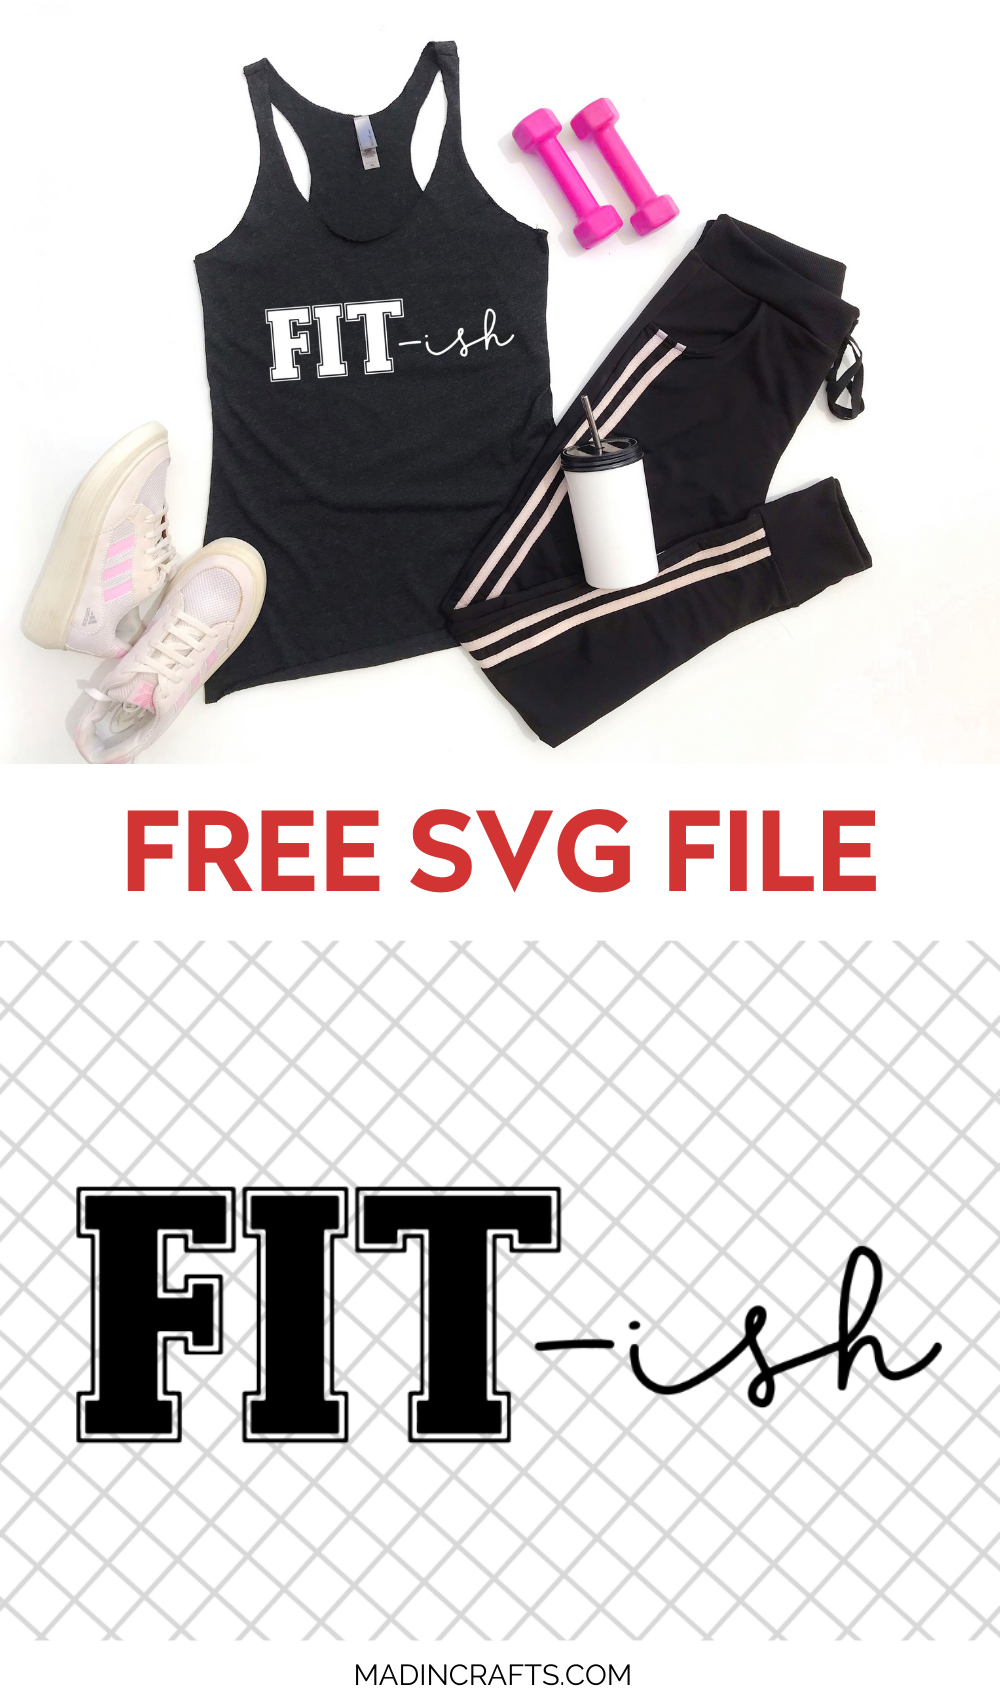 Collage of images containing workout gear with a FIT-ish SVG design